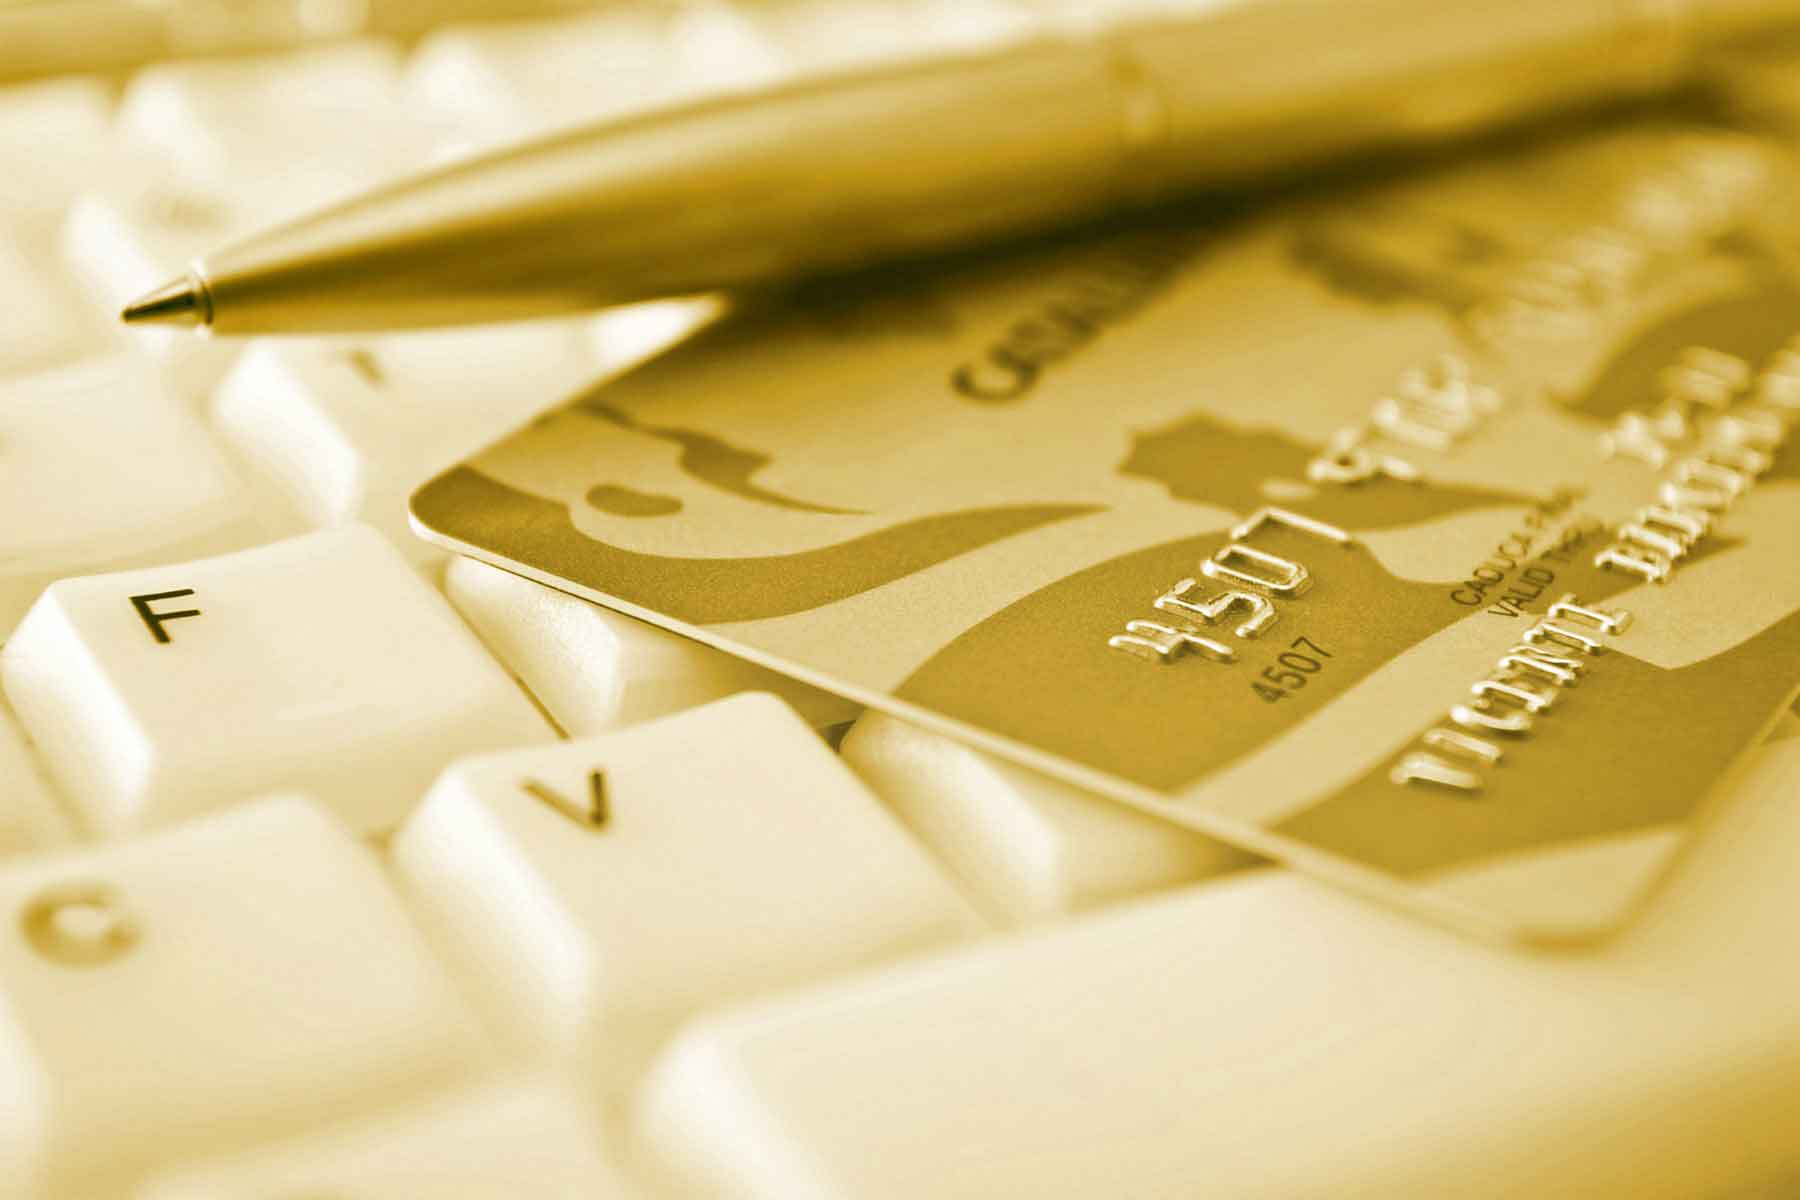 Book Dlivery Services with your Credit Card